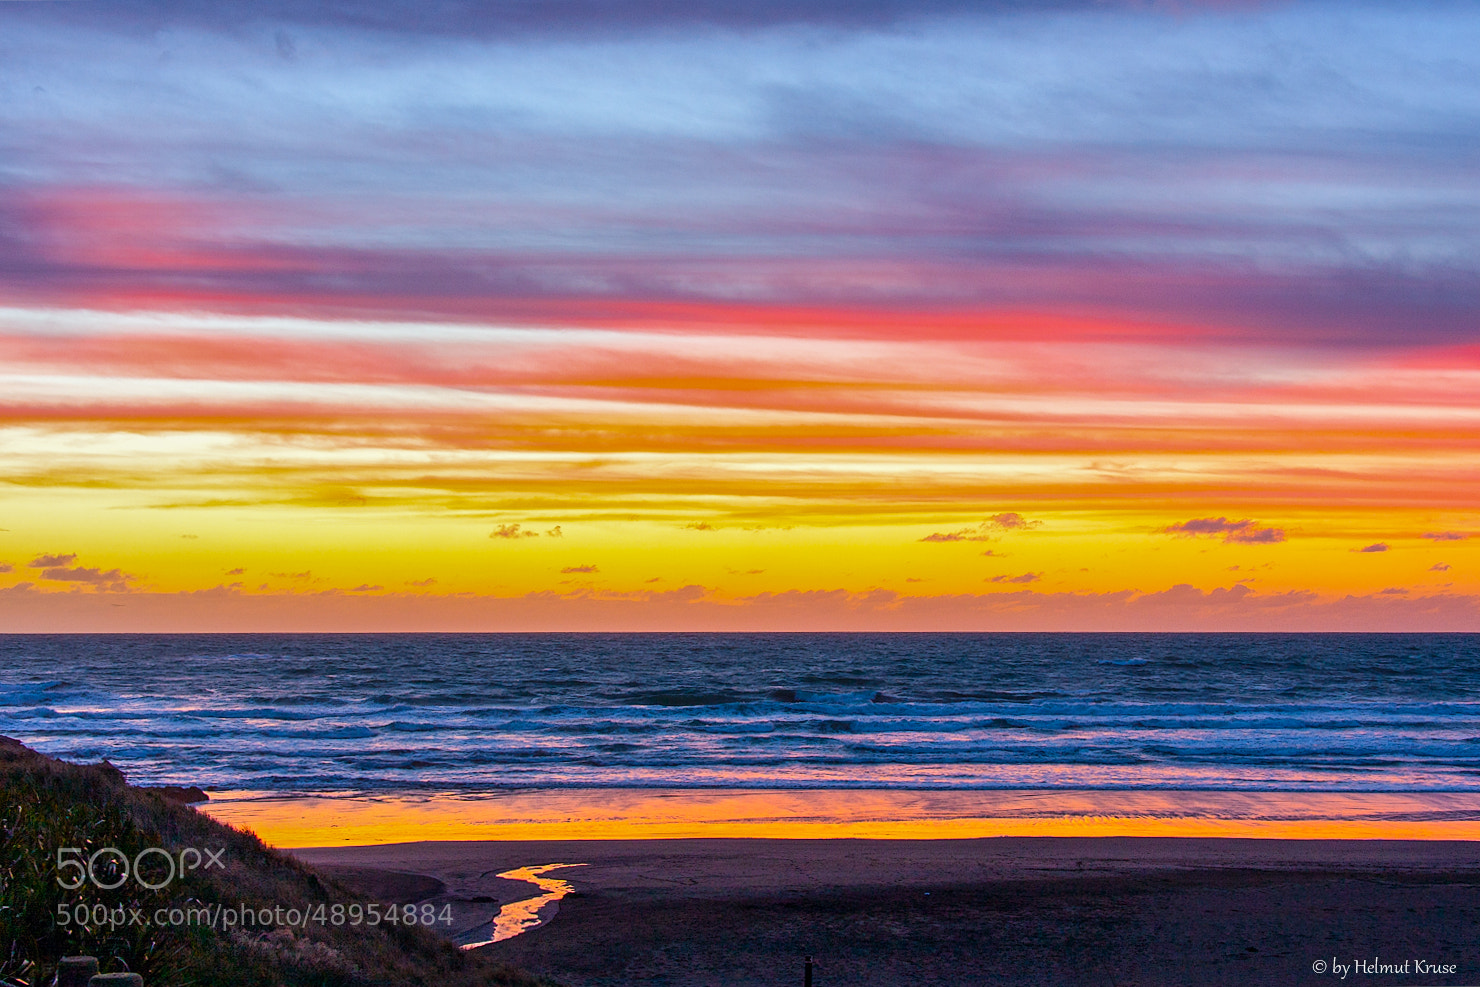 Photograph Colored Sky after sunset at the beach, New by Helmut Kruse on 500px